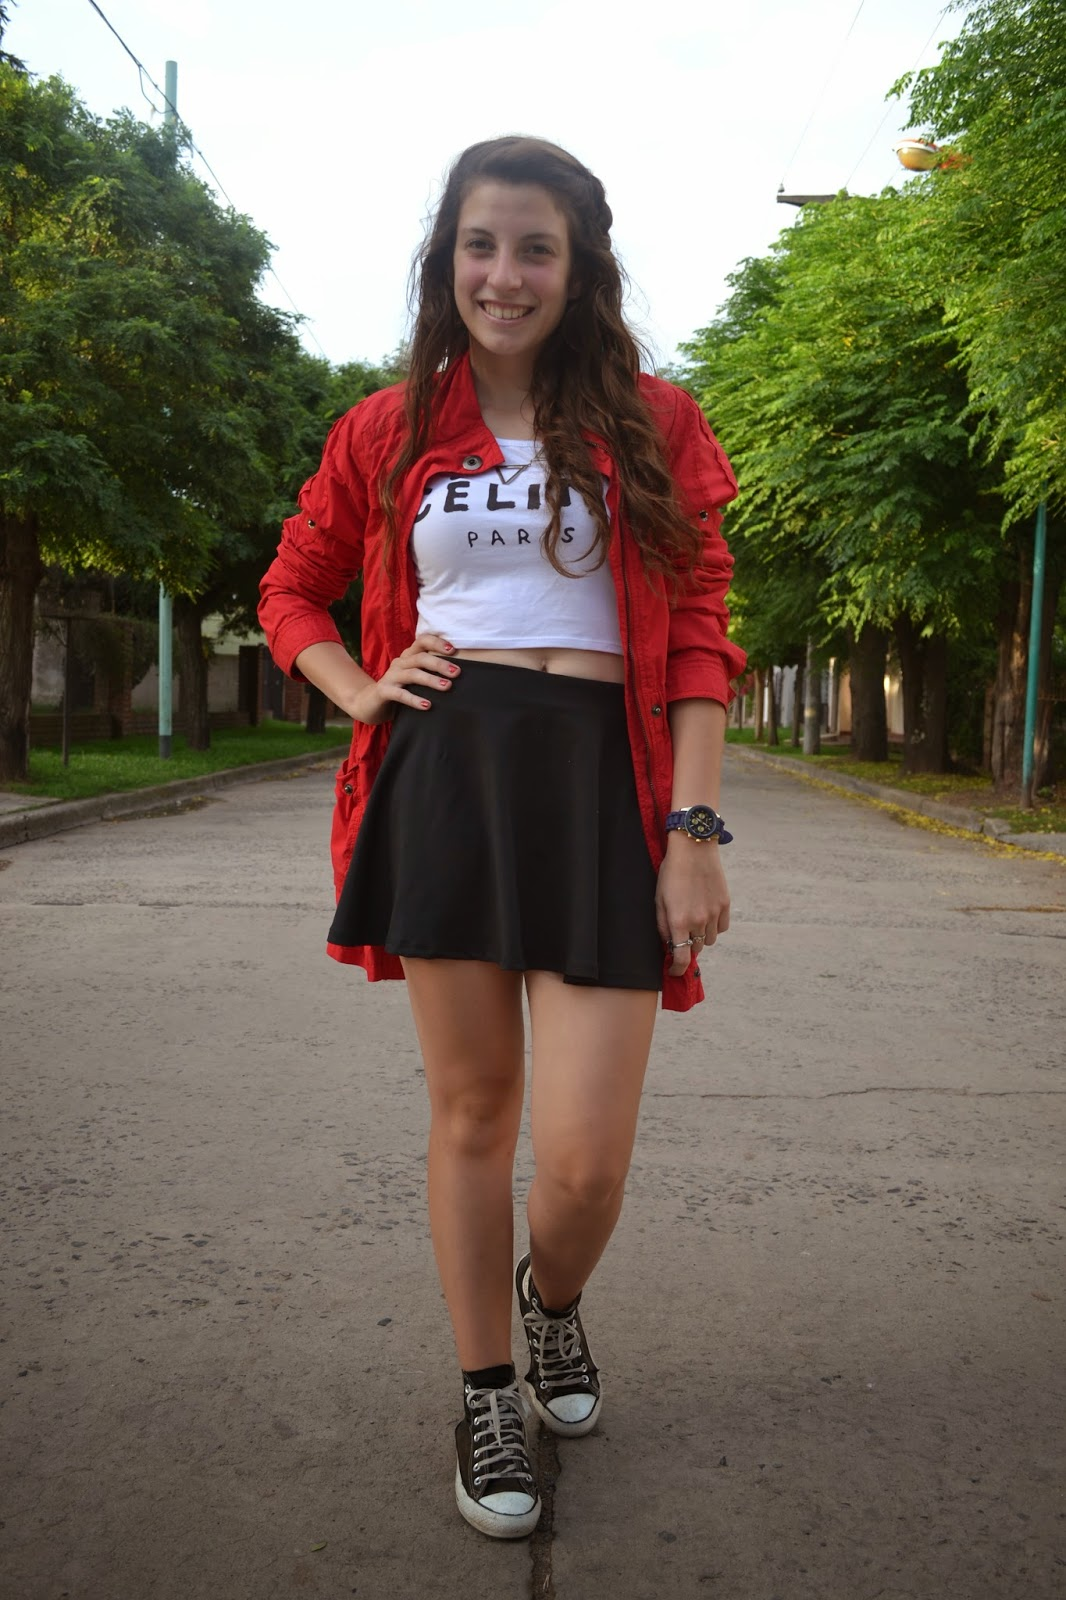 Alba Colegiala obsessed: belly button